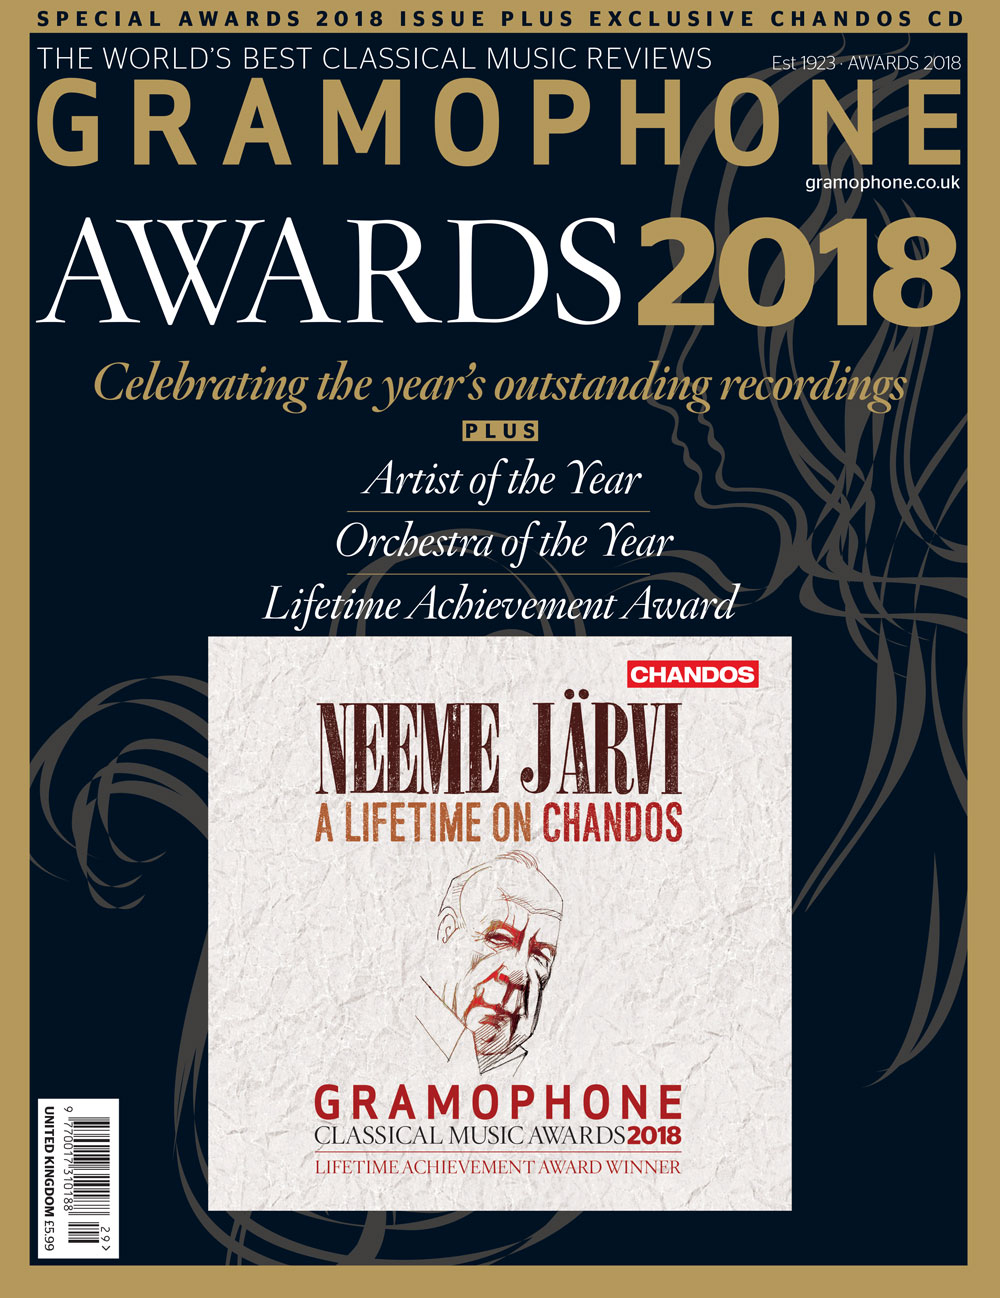 Gramophone Awards issue 2018